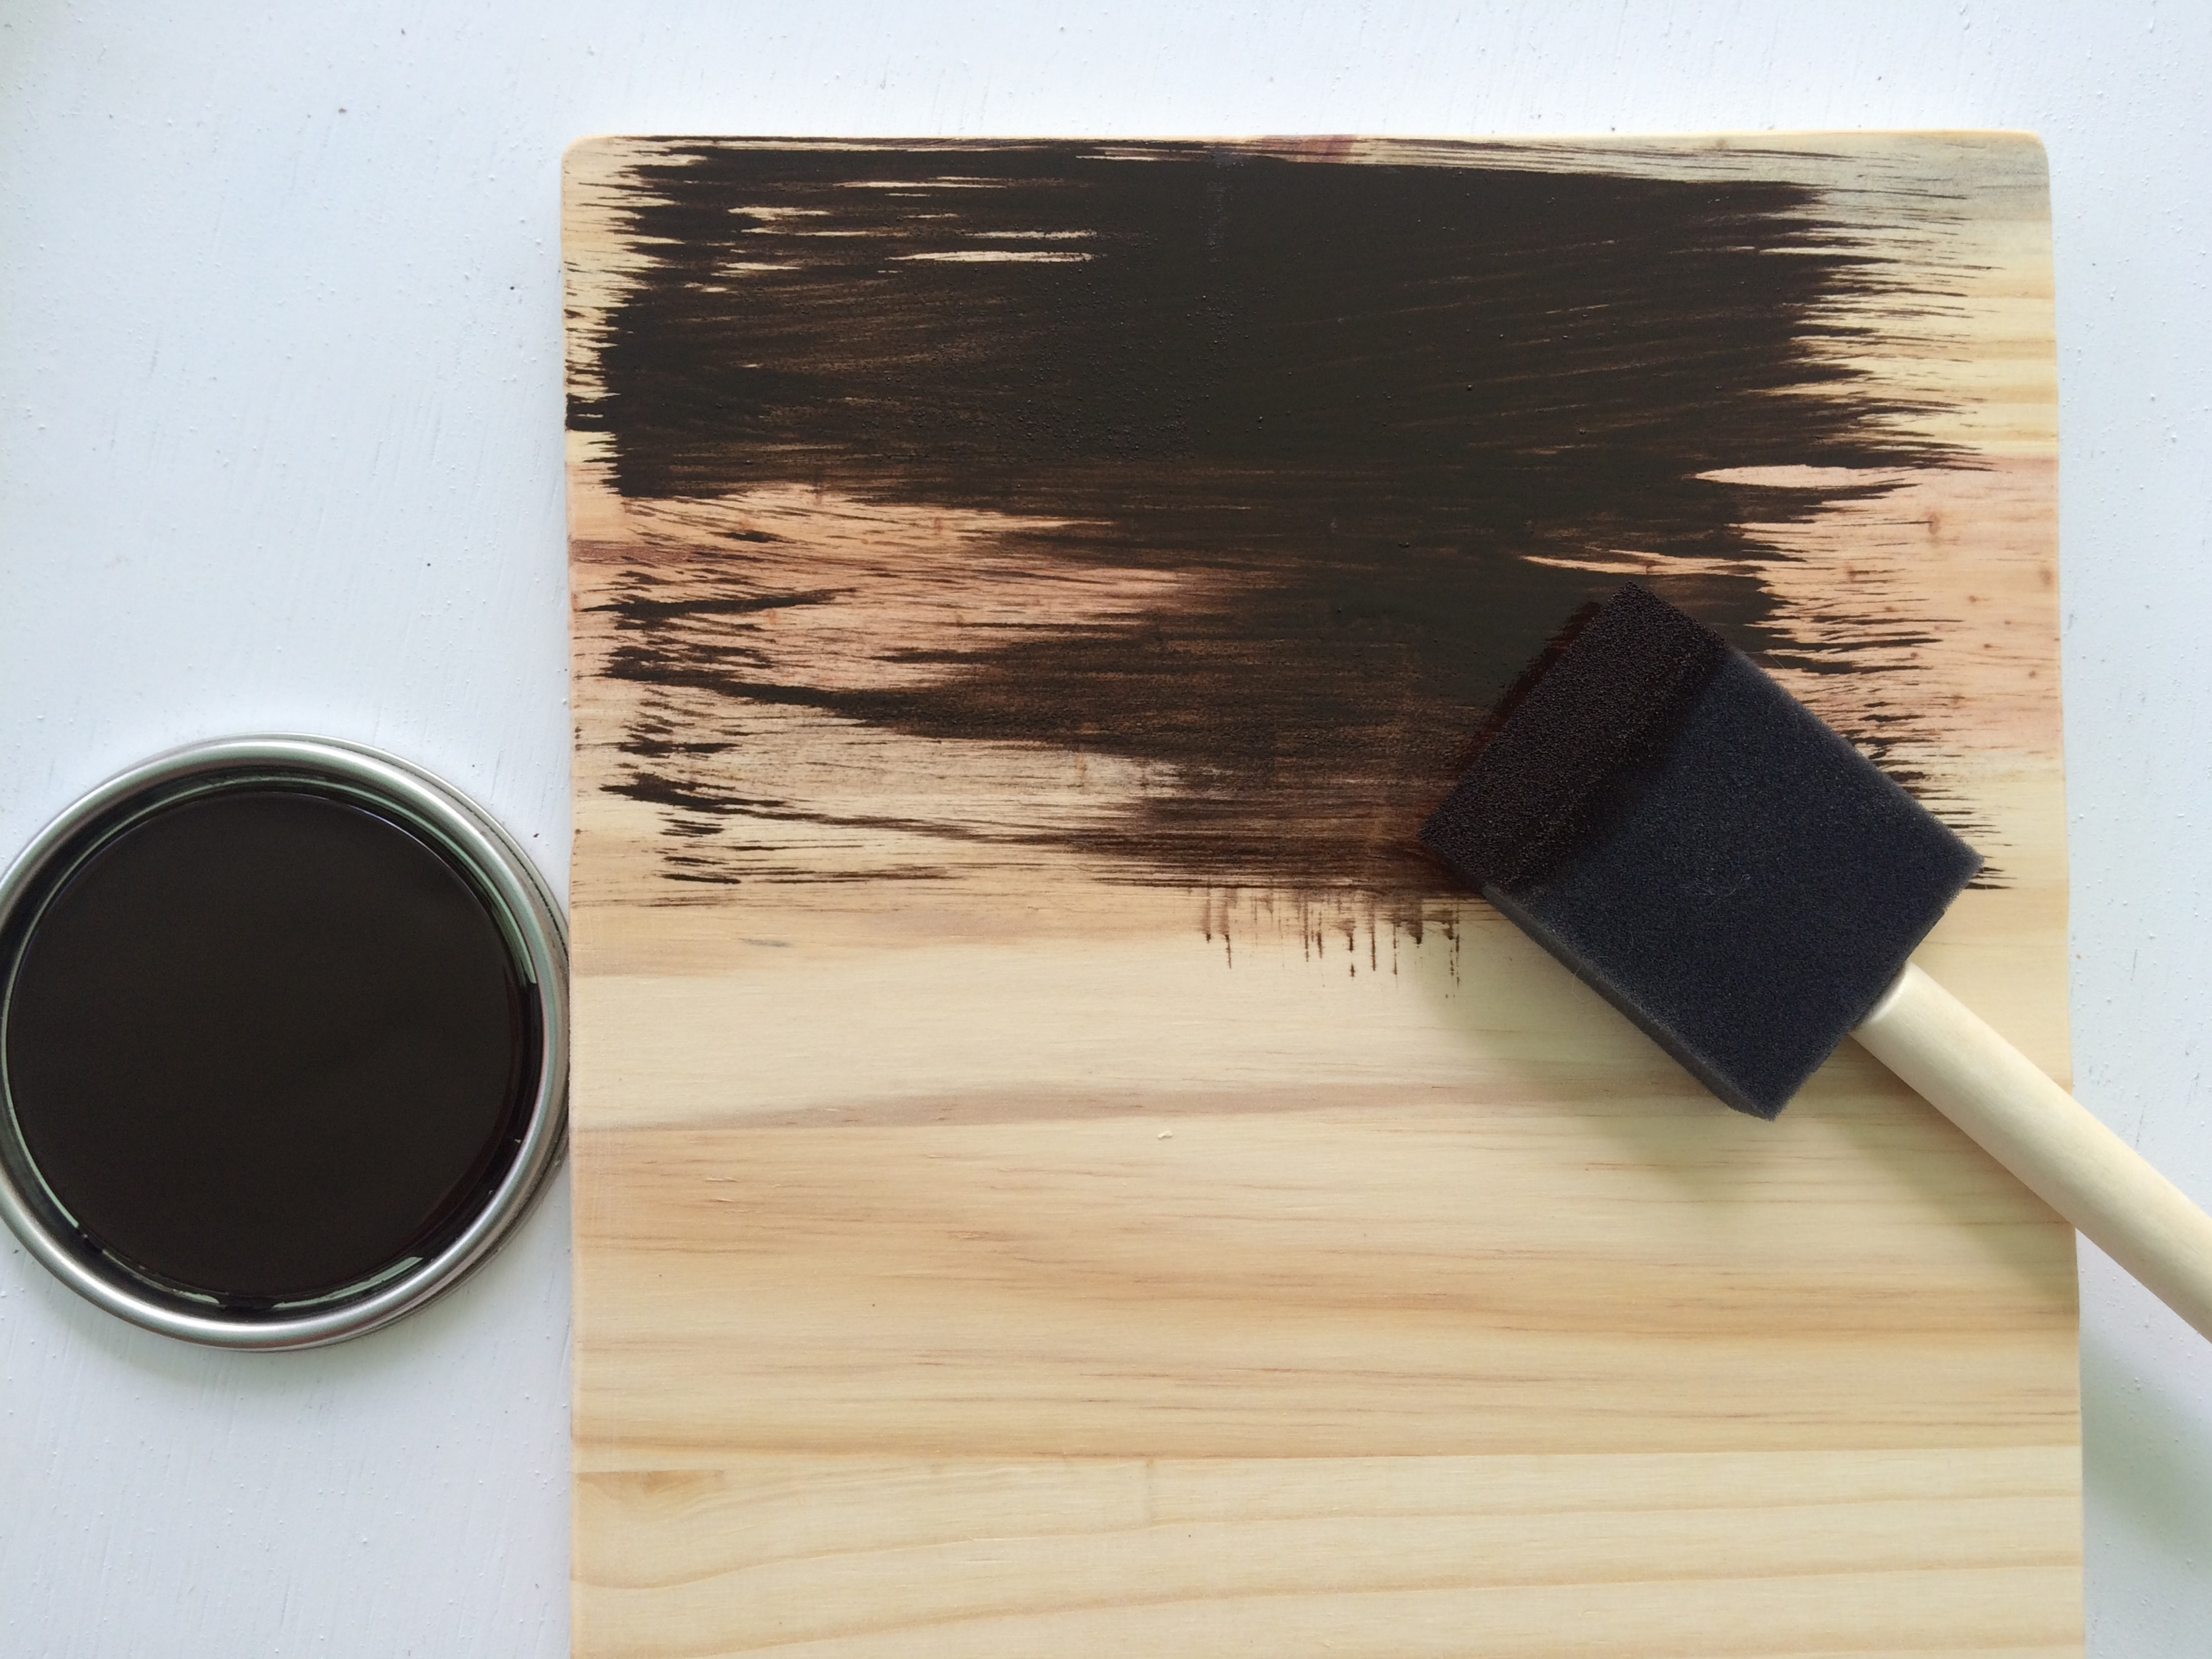 Using a dark stain on a piece of wood